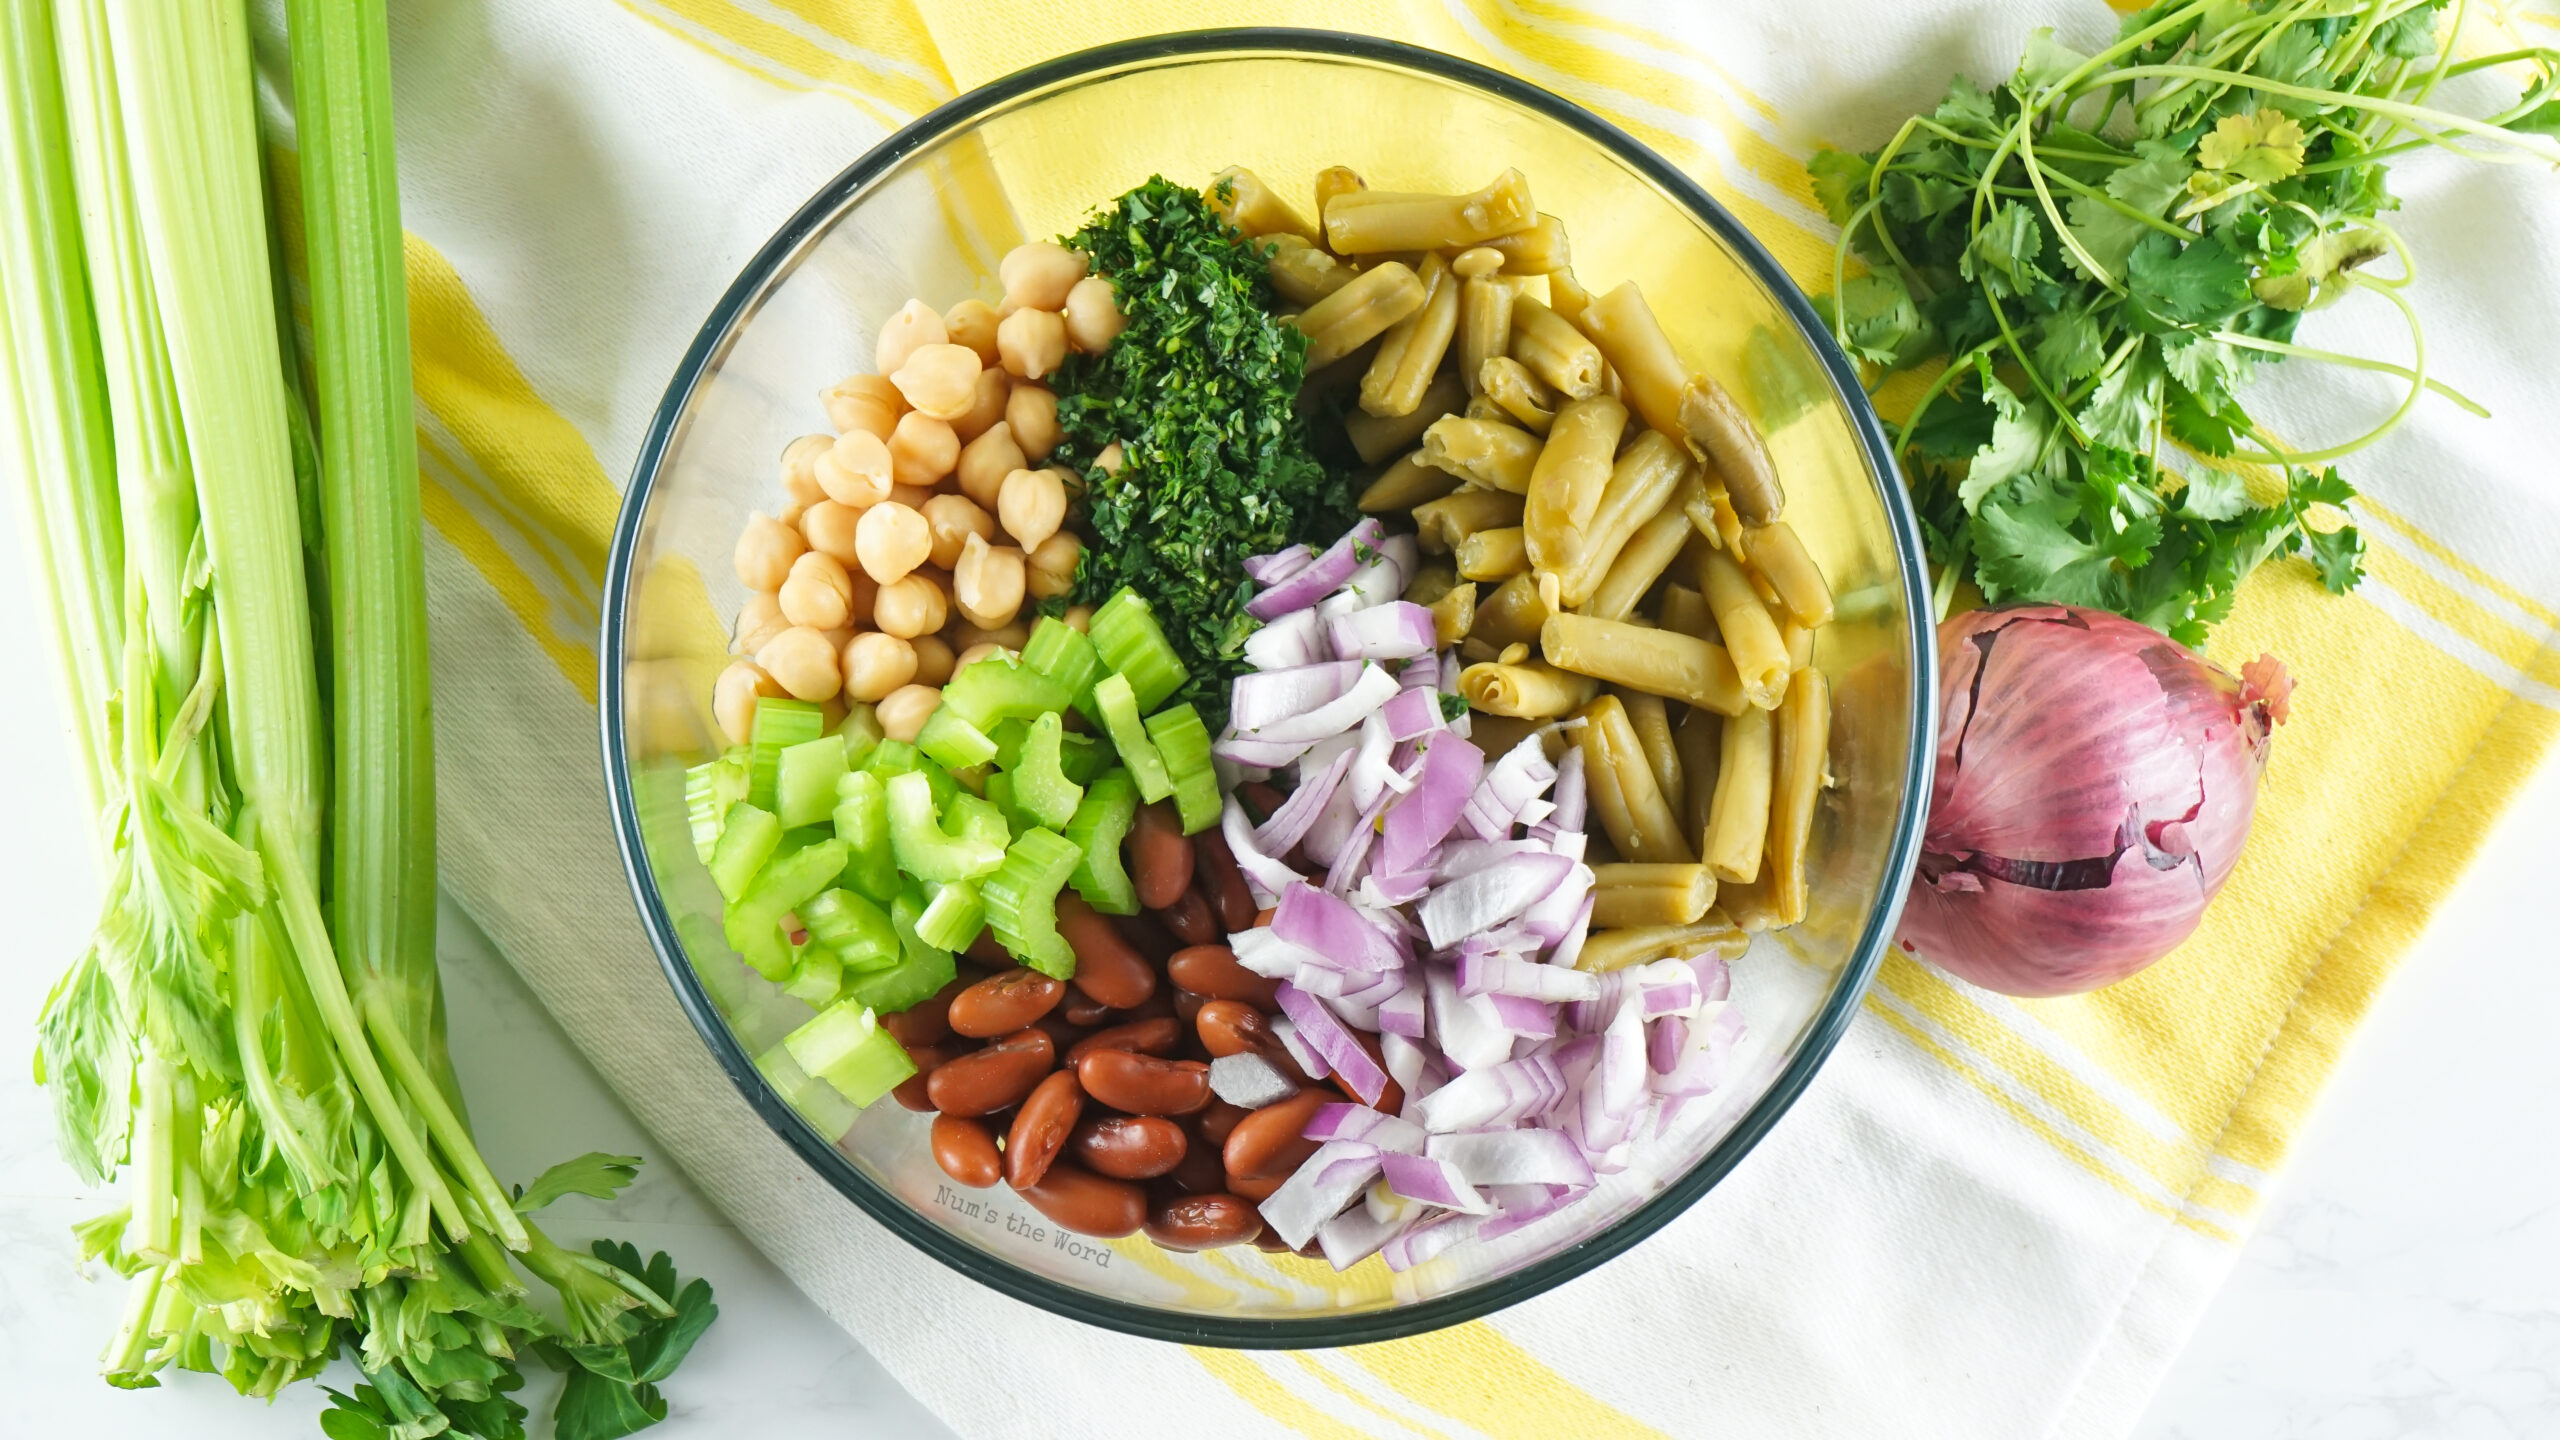 green beans, kidney beans, garbanzo beans, red onion, celery, and cilantro added to a bowl